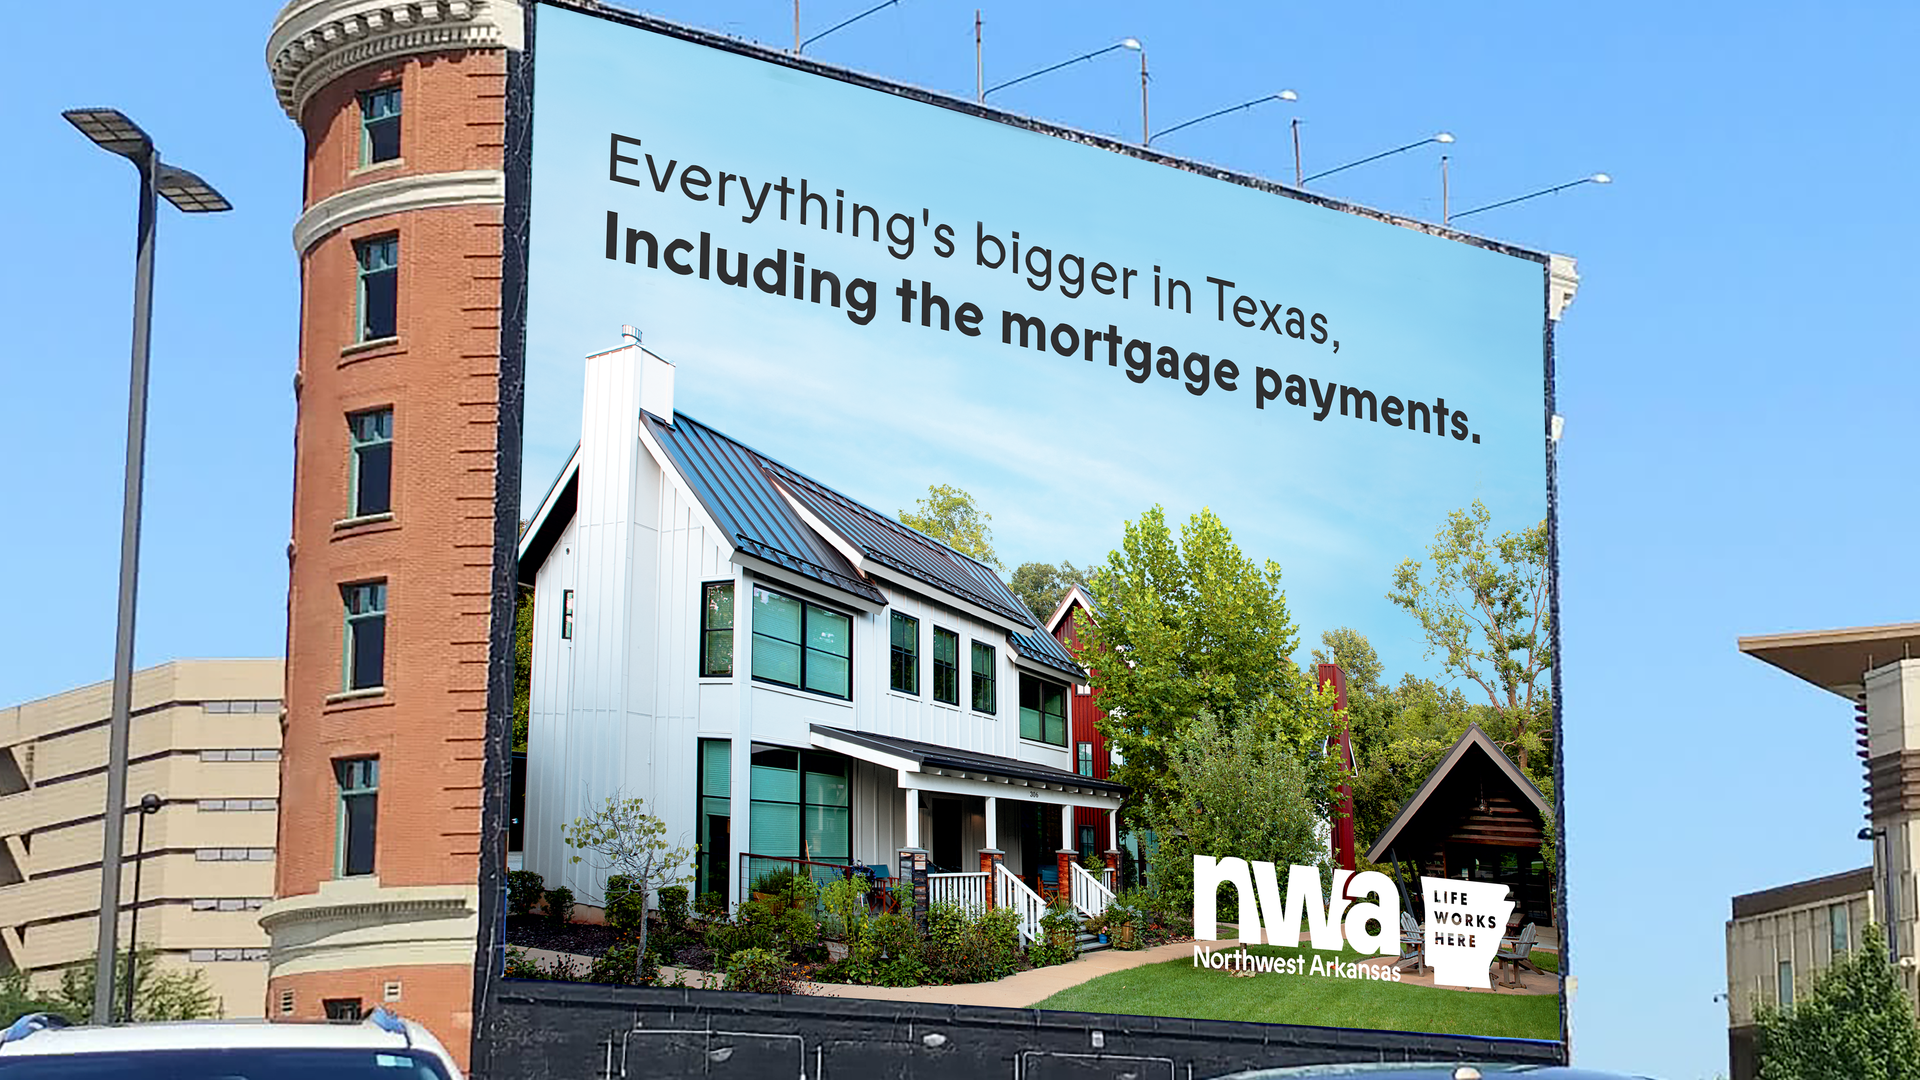 A billboard that reads Everything's bigger in Texas, including the mortgage payments.